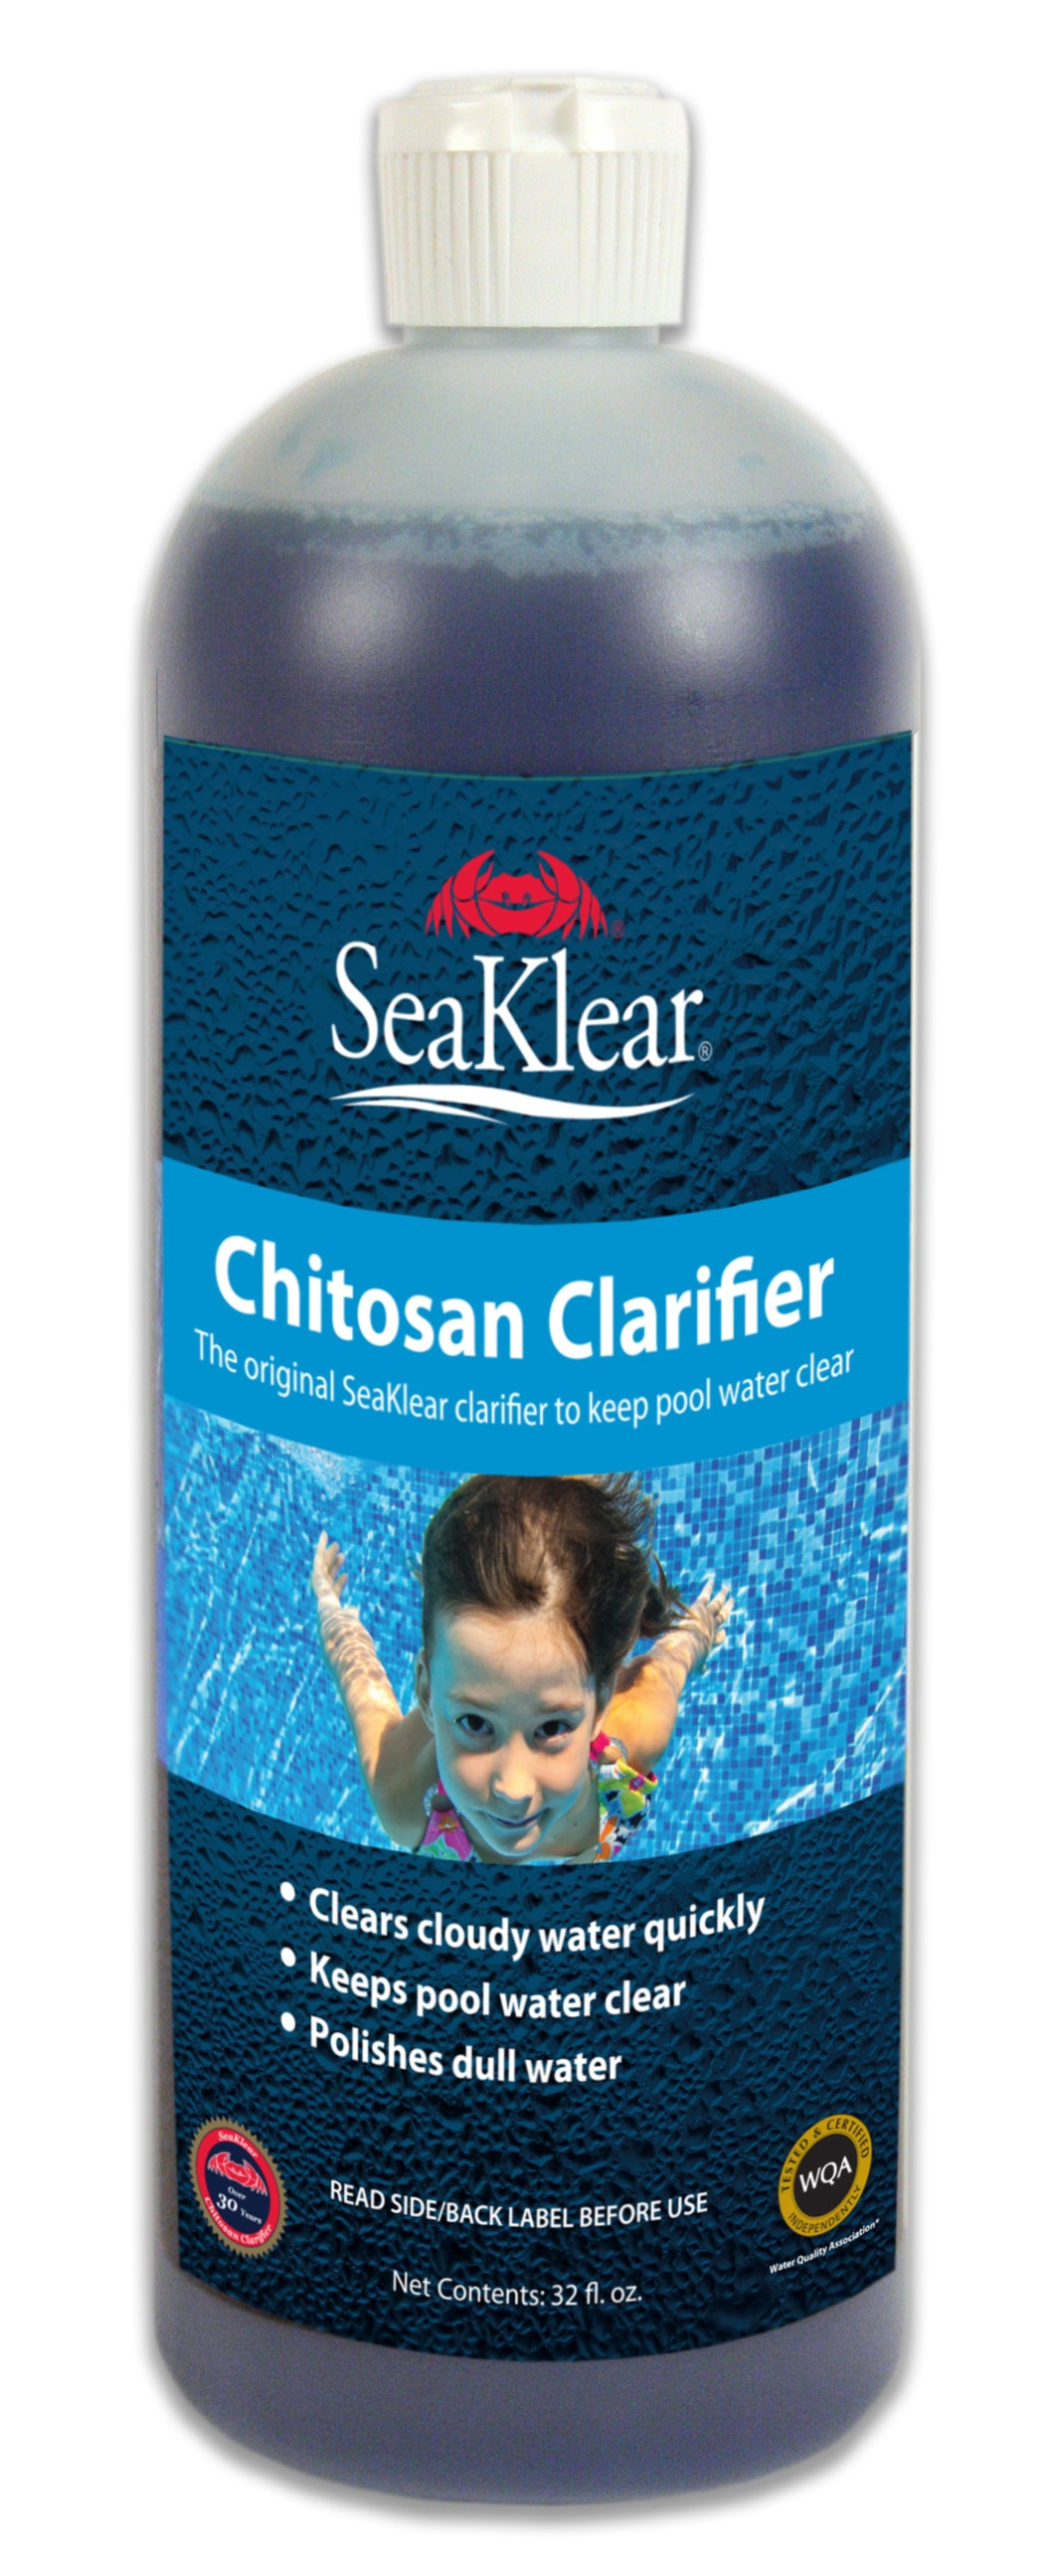 Sea Klear Natural Clarifier - Improve Filtration - Make Water Sparkle